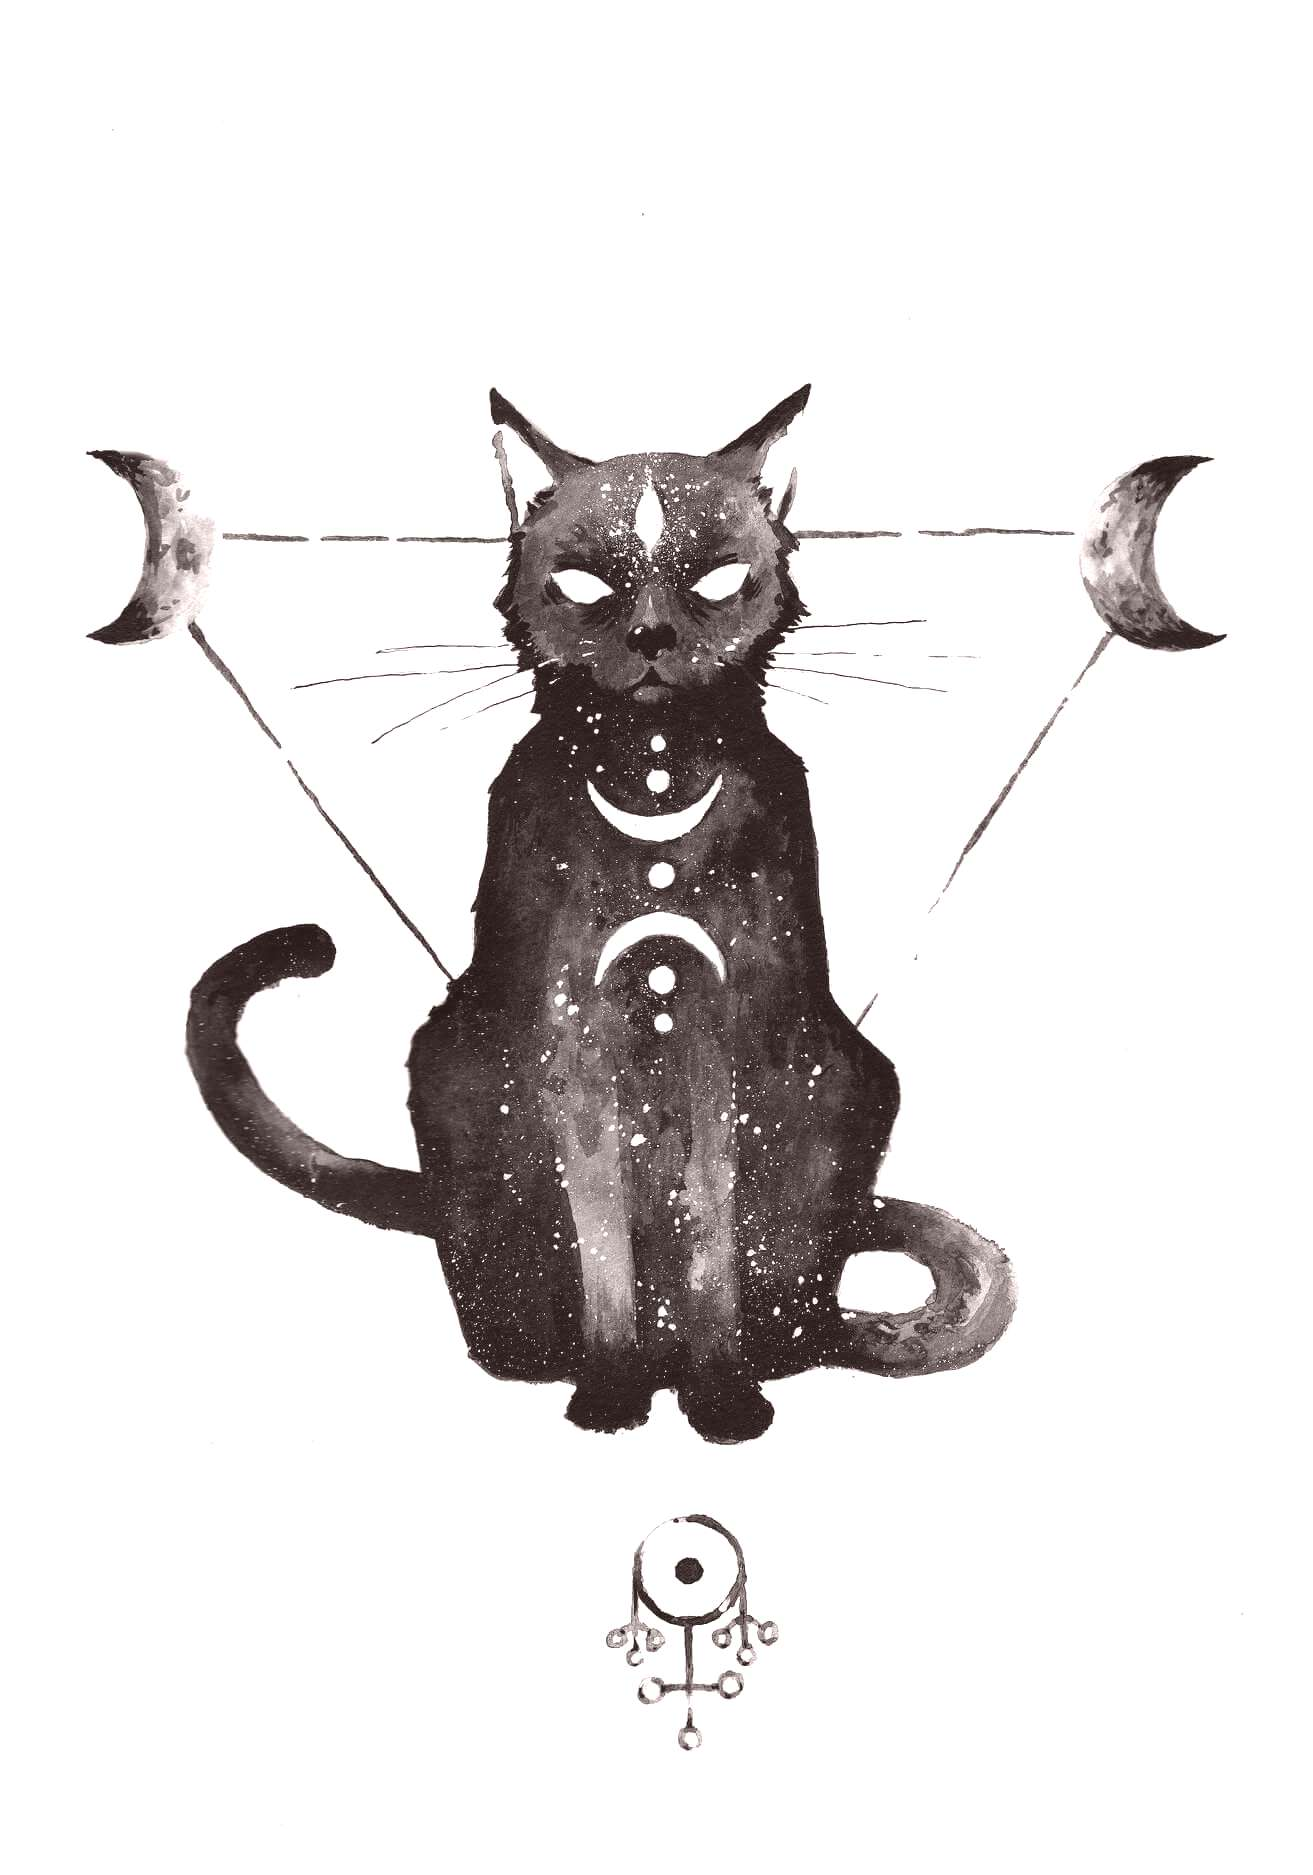 I could see myself getting this tattoo when Momo passes. Fluffier tail and ruff though.